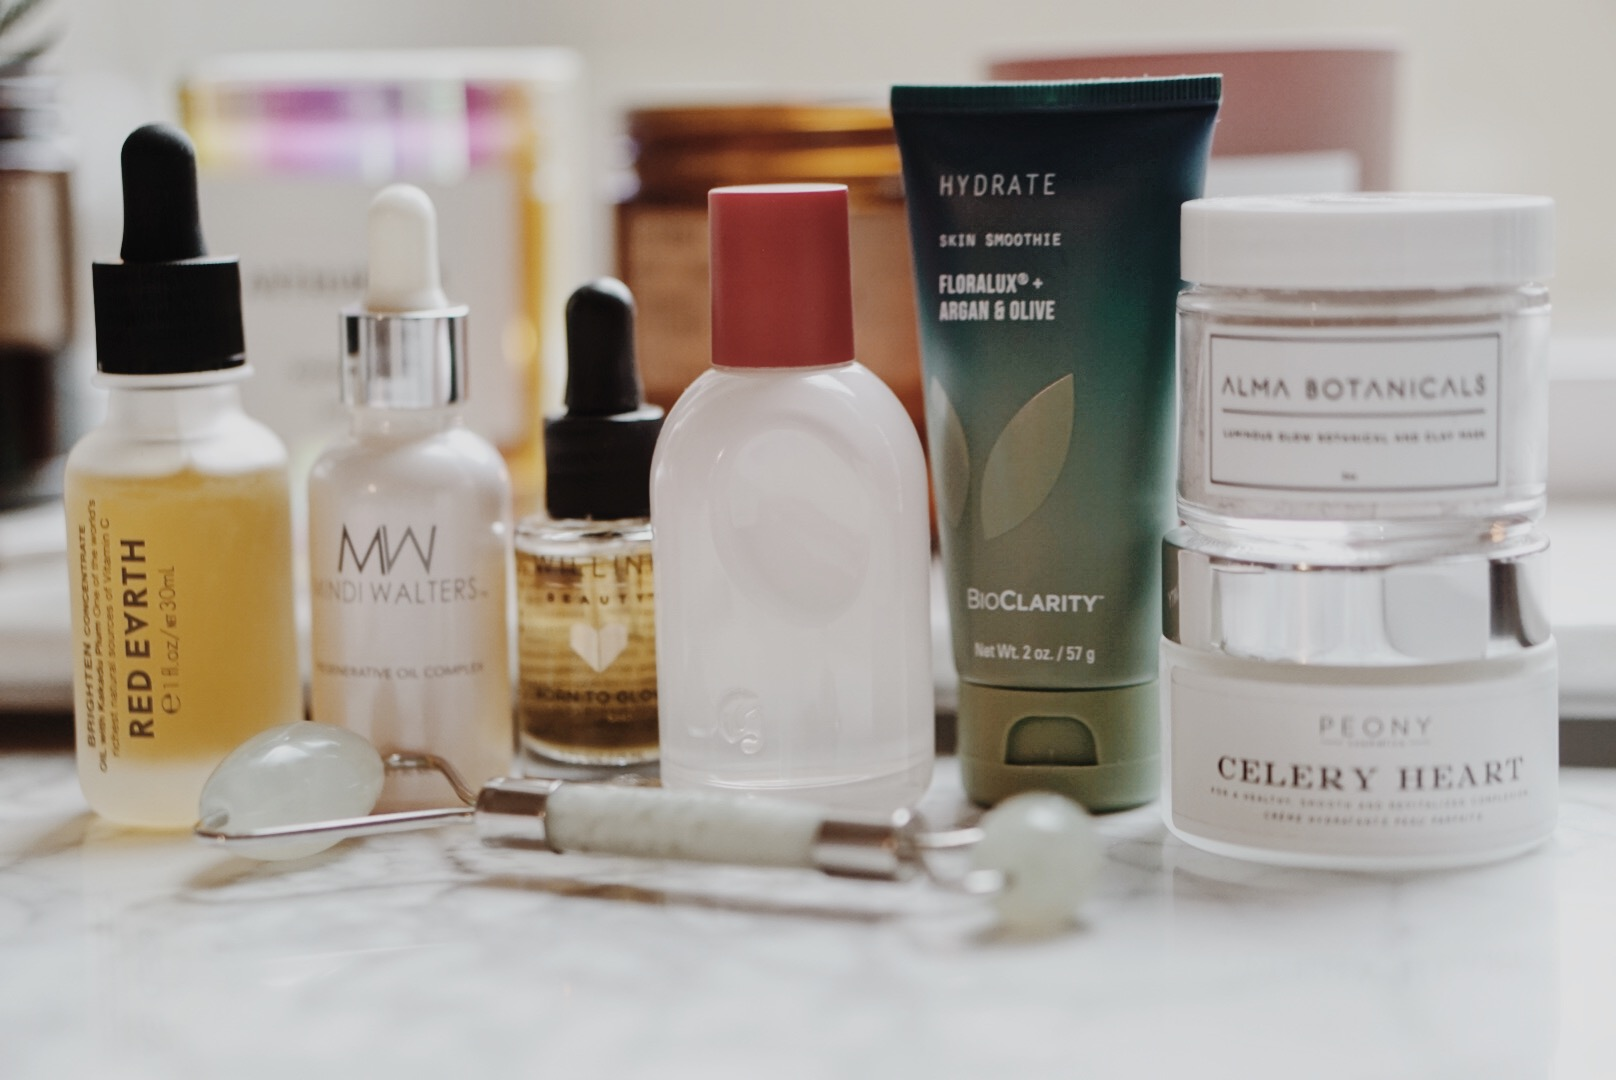 Products I'm Testing | Glossier, Red Earth Beauty, Mount Lai, Alma Botanicals, BioClarity, Alma Botanicals